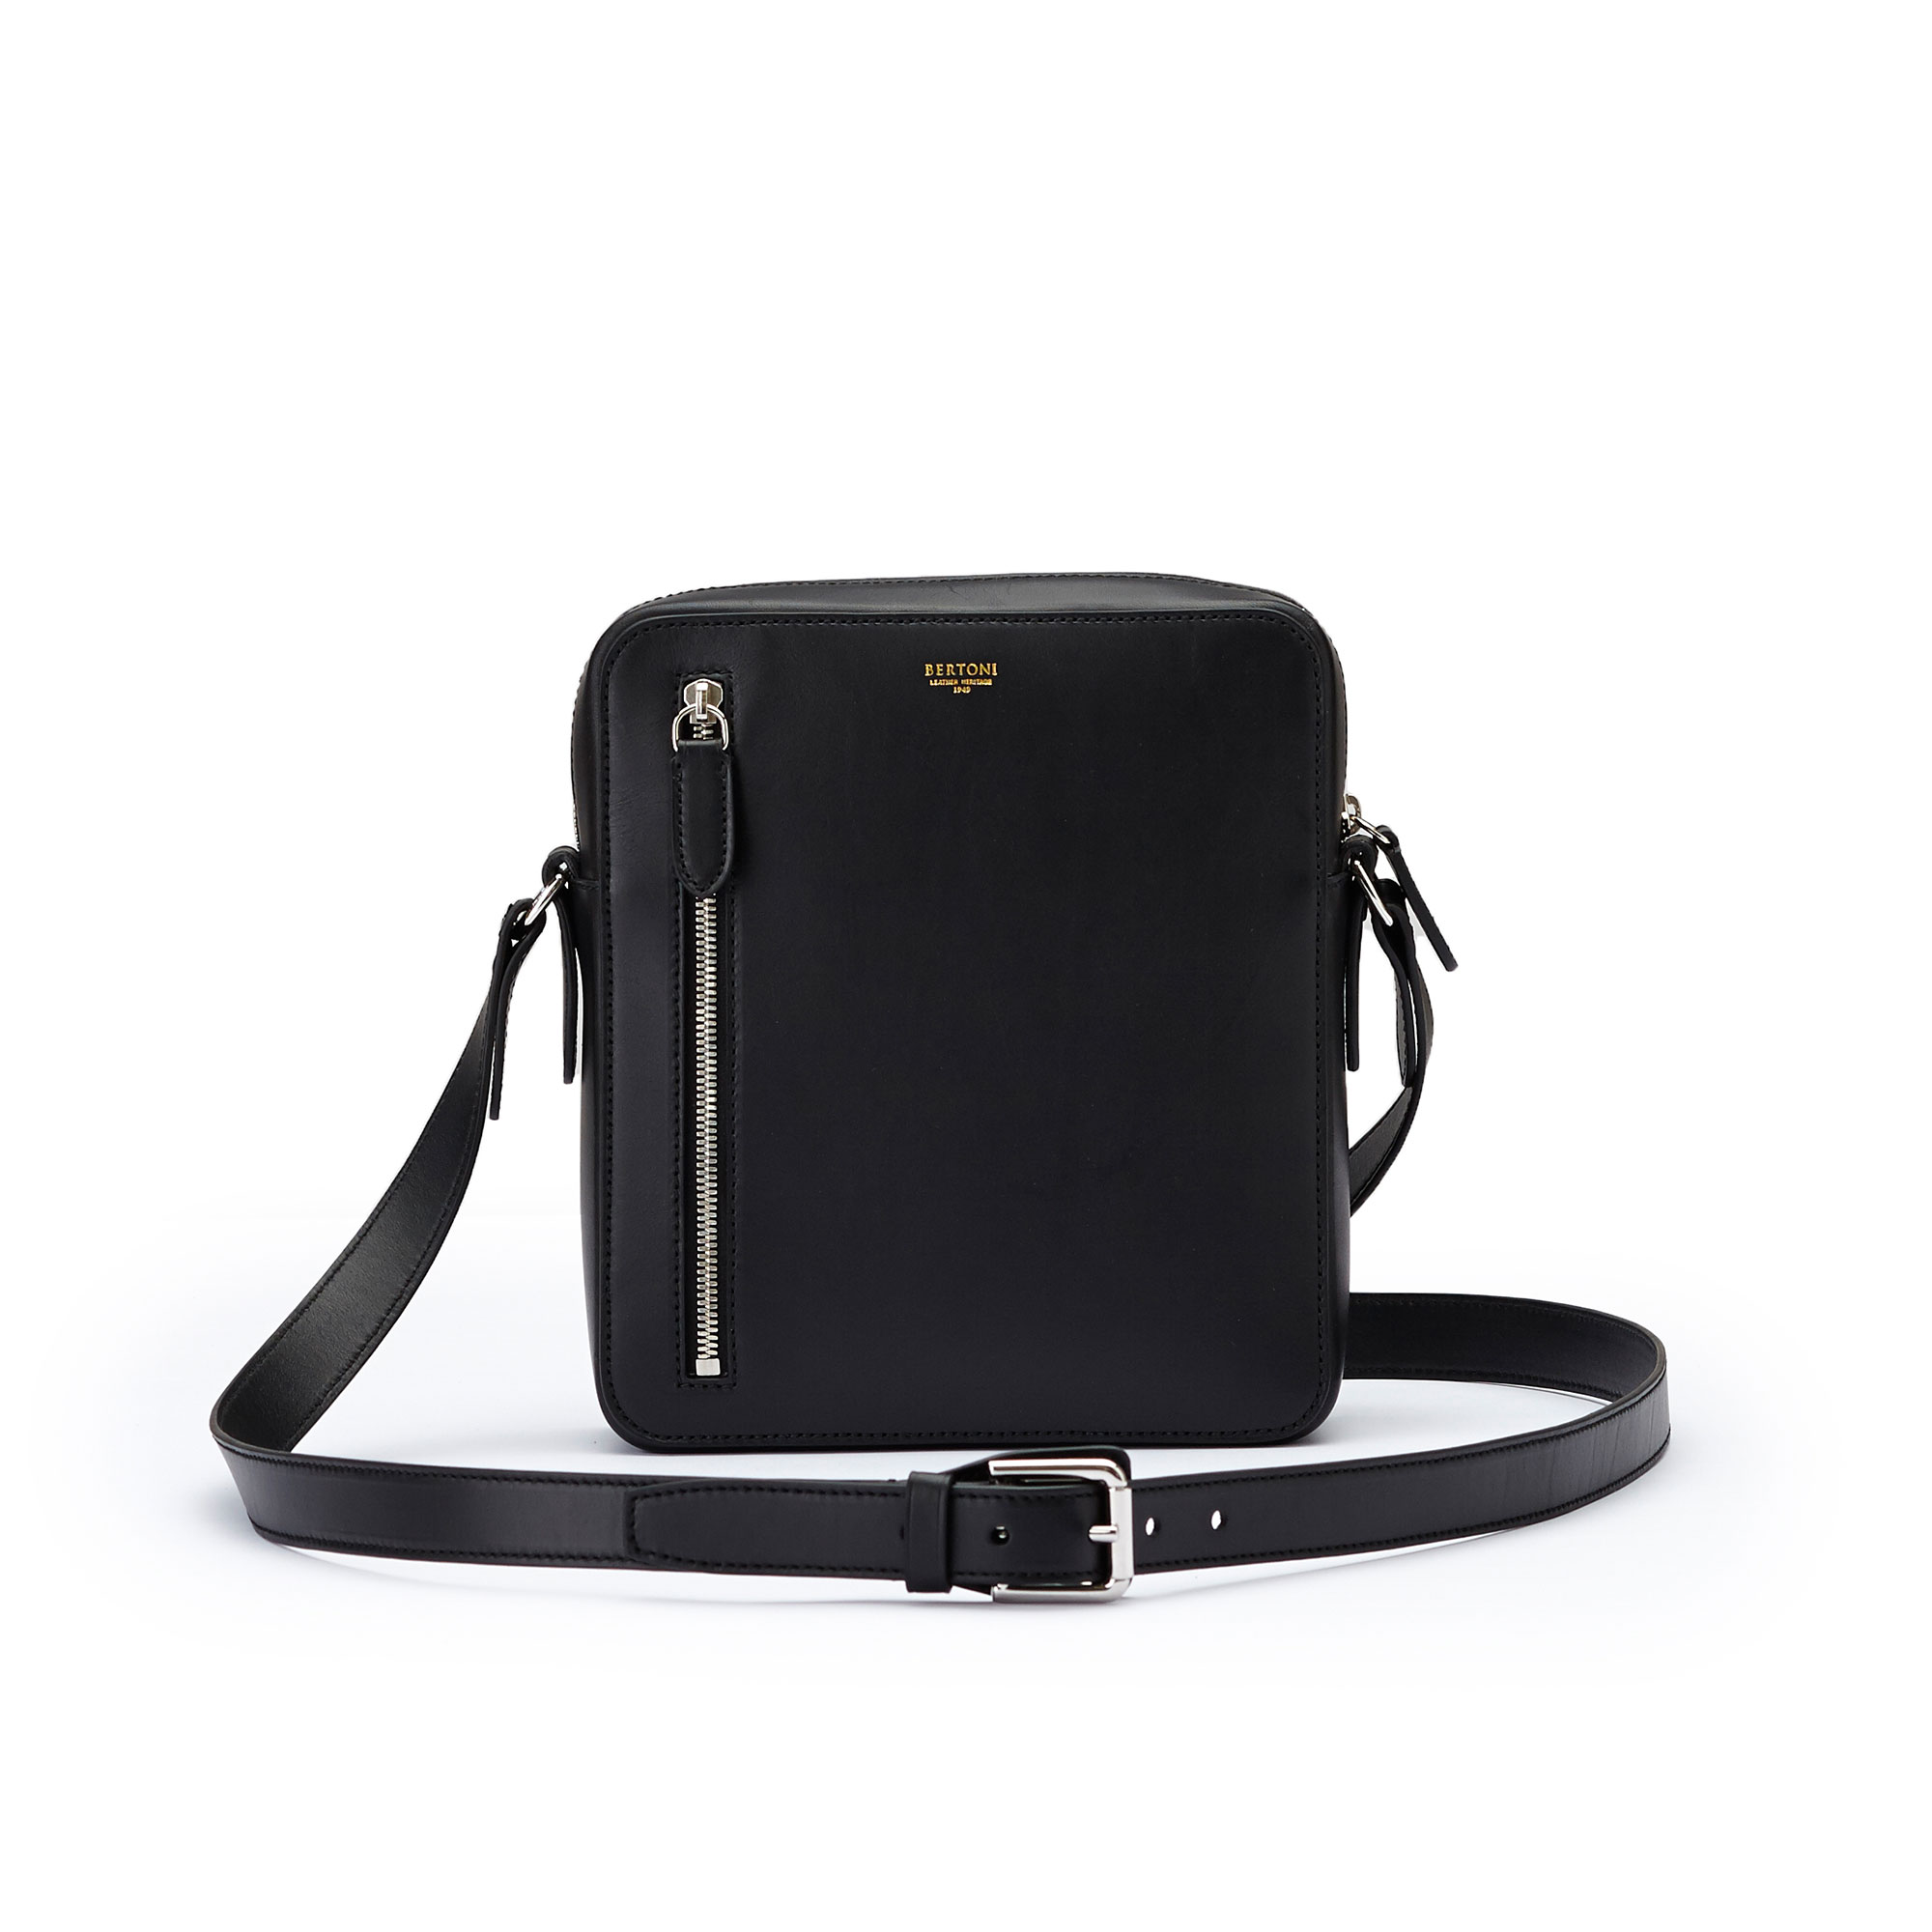 The black french calf Man Bag by Bertoni 1949 02